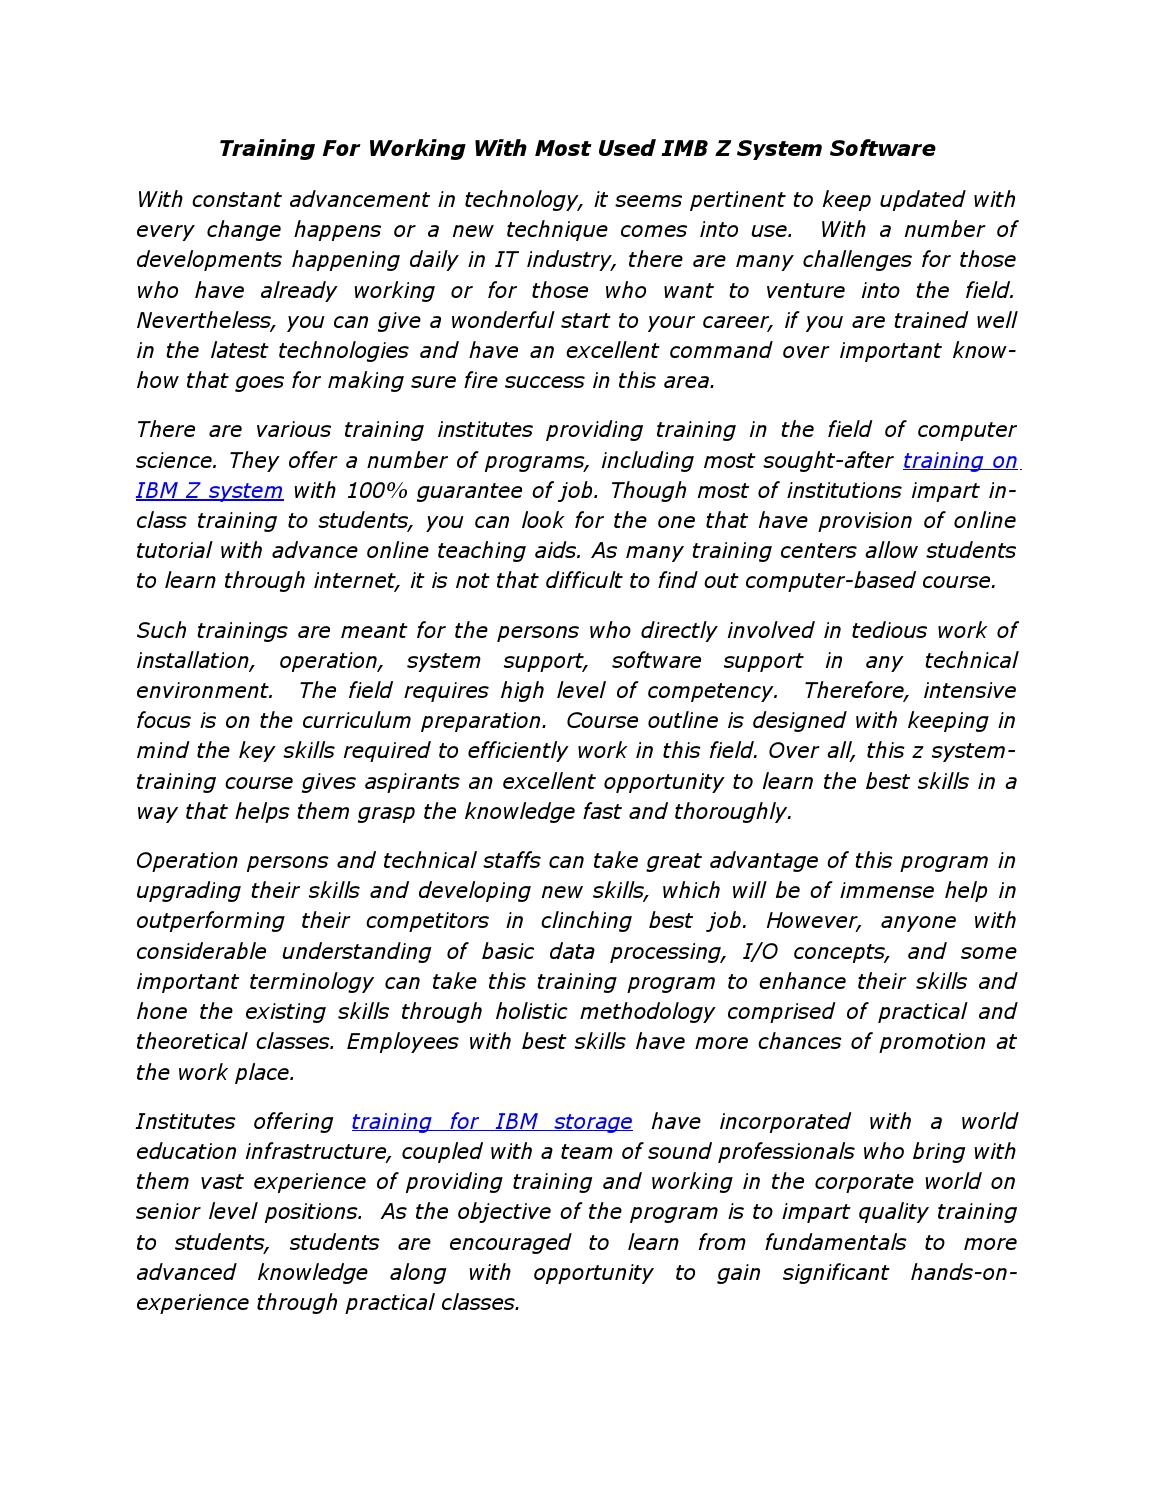 musicjuice net the challenge of starting up a new internet venture Pandesic: the challenges of a new business venture (b) case study solution, pandesic: the challenges of a new business venture (b) case study analysis, subjects covered entrepreneurial management internet joint ventures by joseph l bower, clark gilbert source: harvard business school 5 pages.